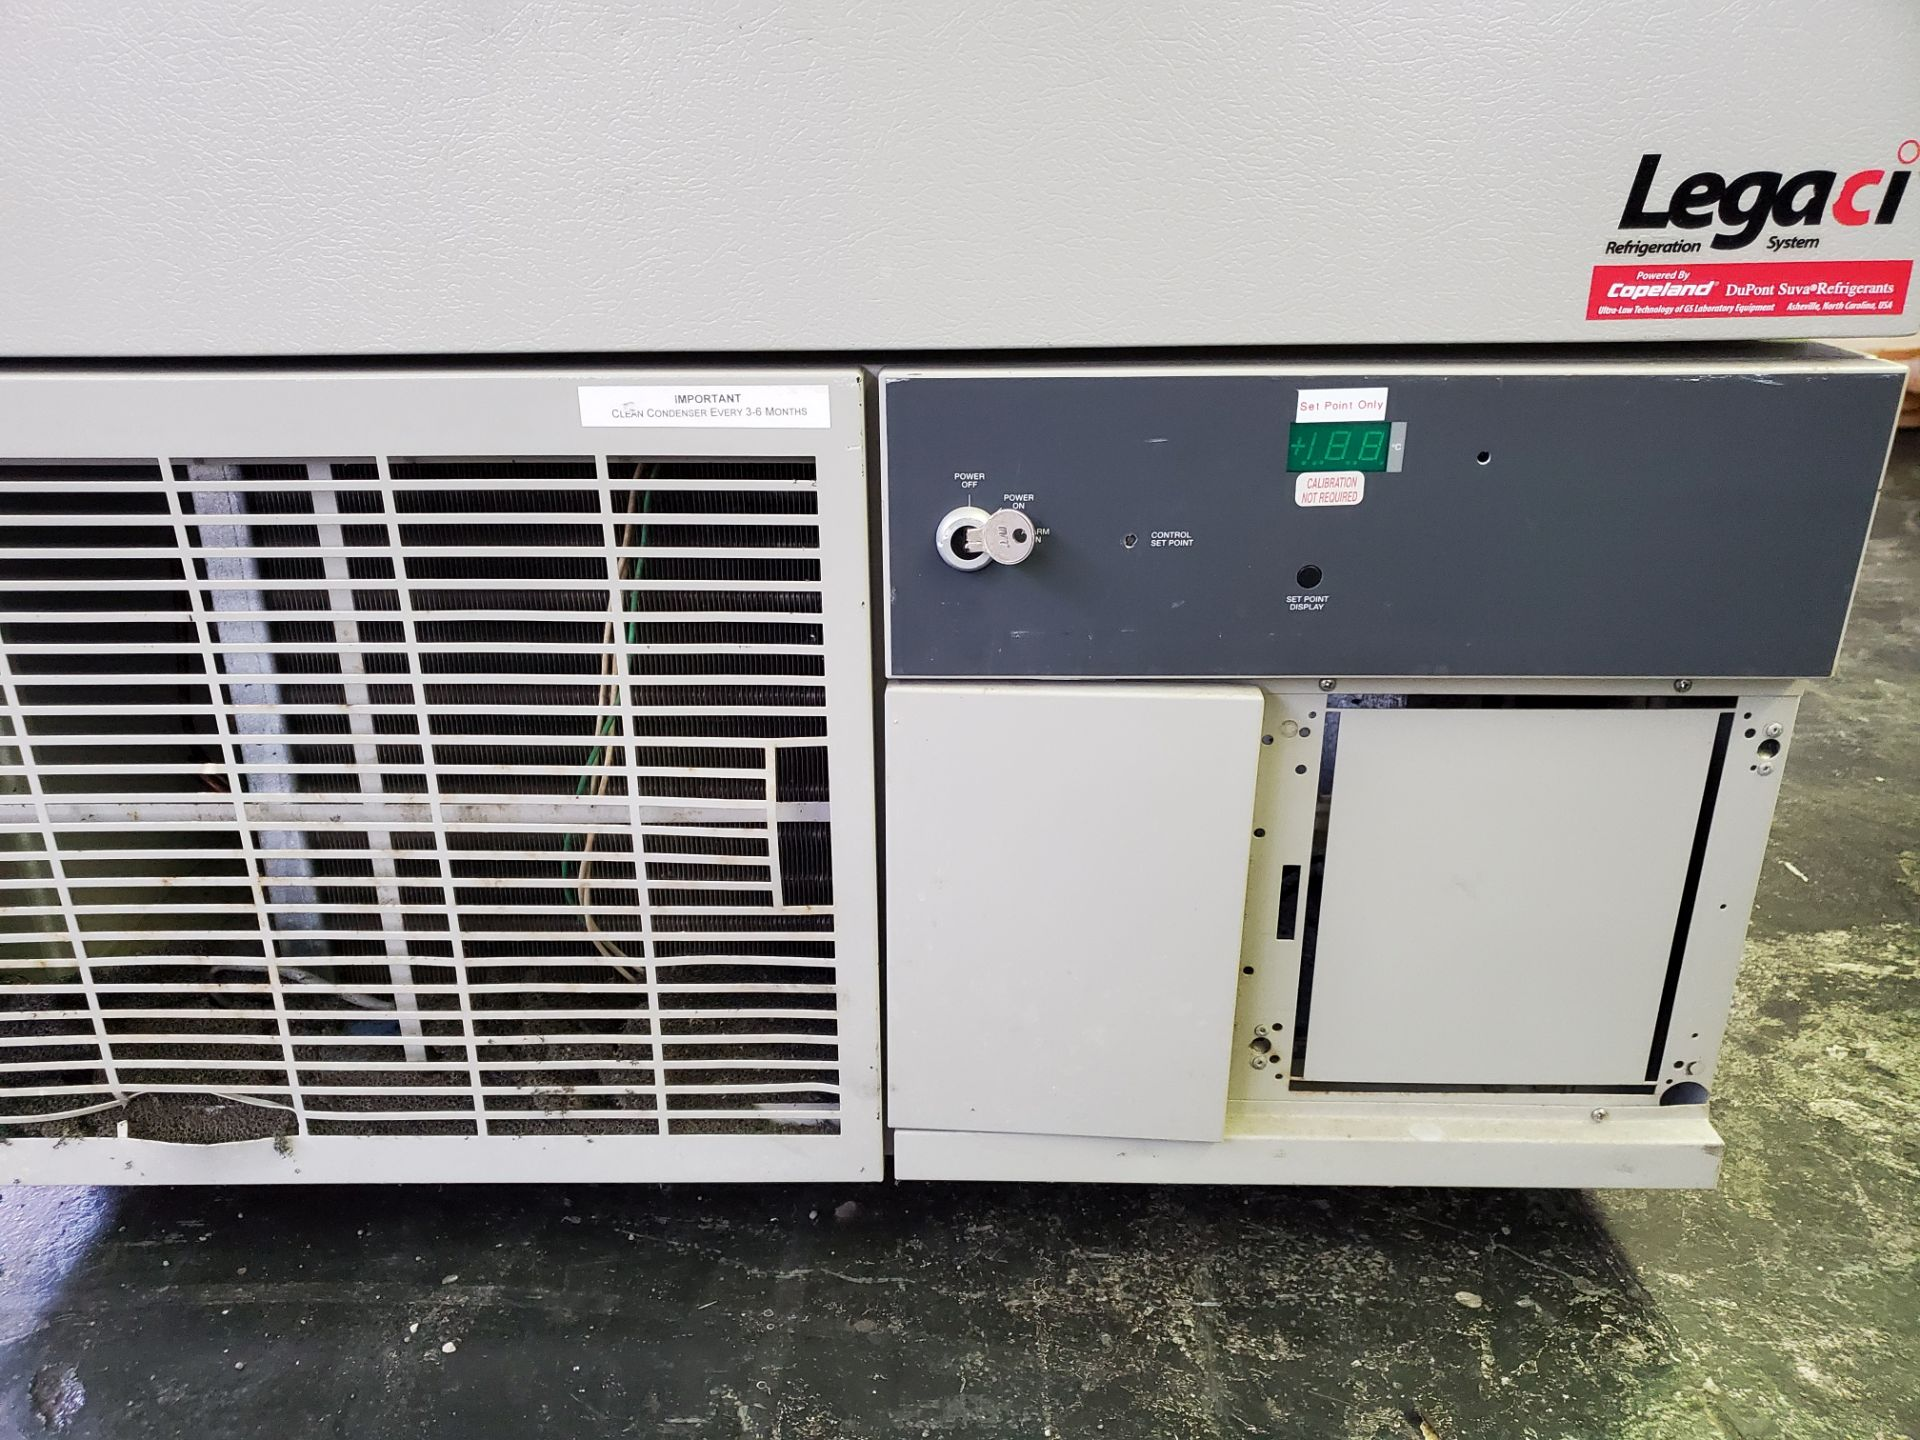 Revco/GS Laboratory Equipment Freezer, model ULT1740-3-A34 - Image 5 of 7